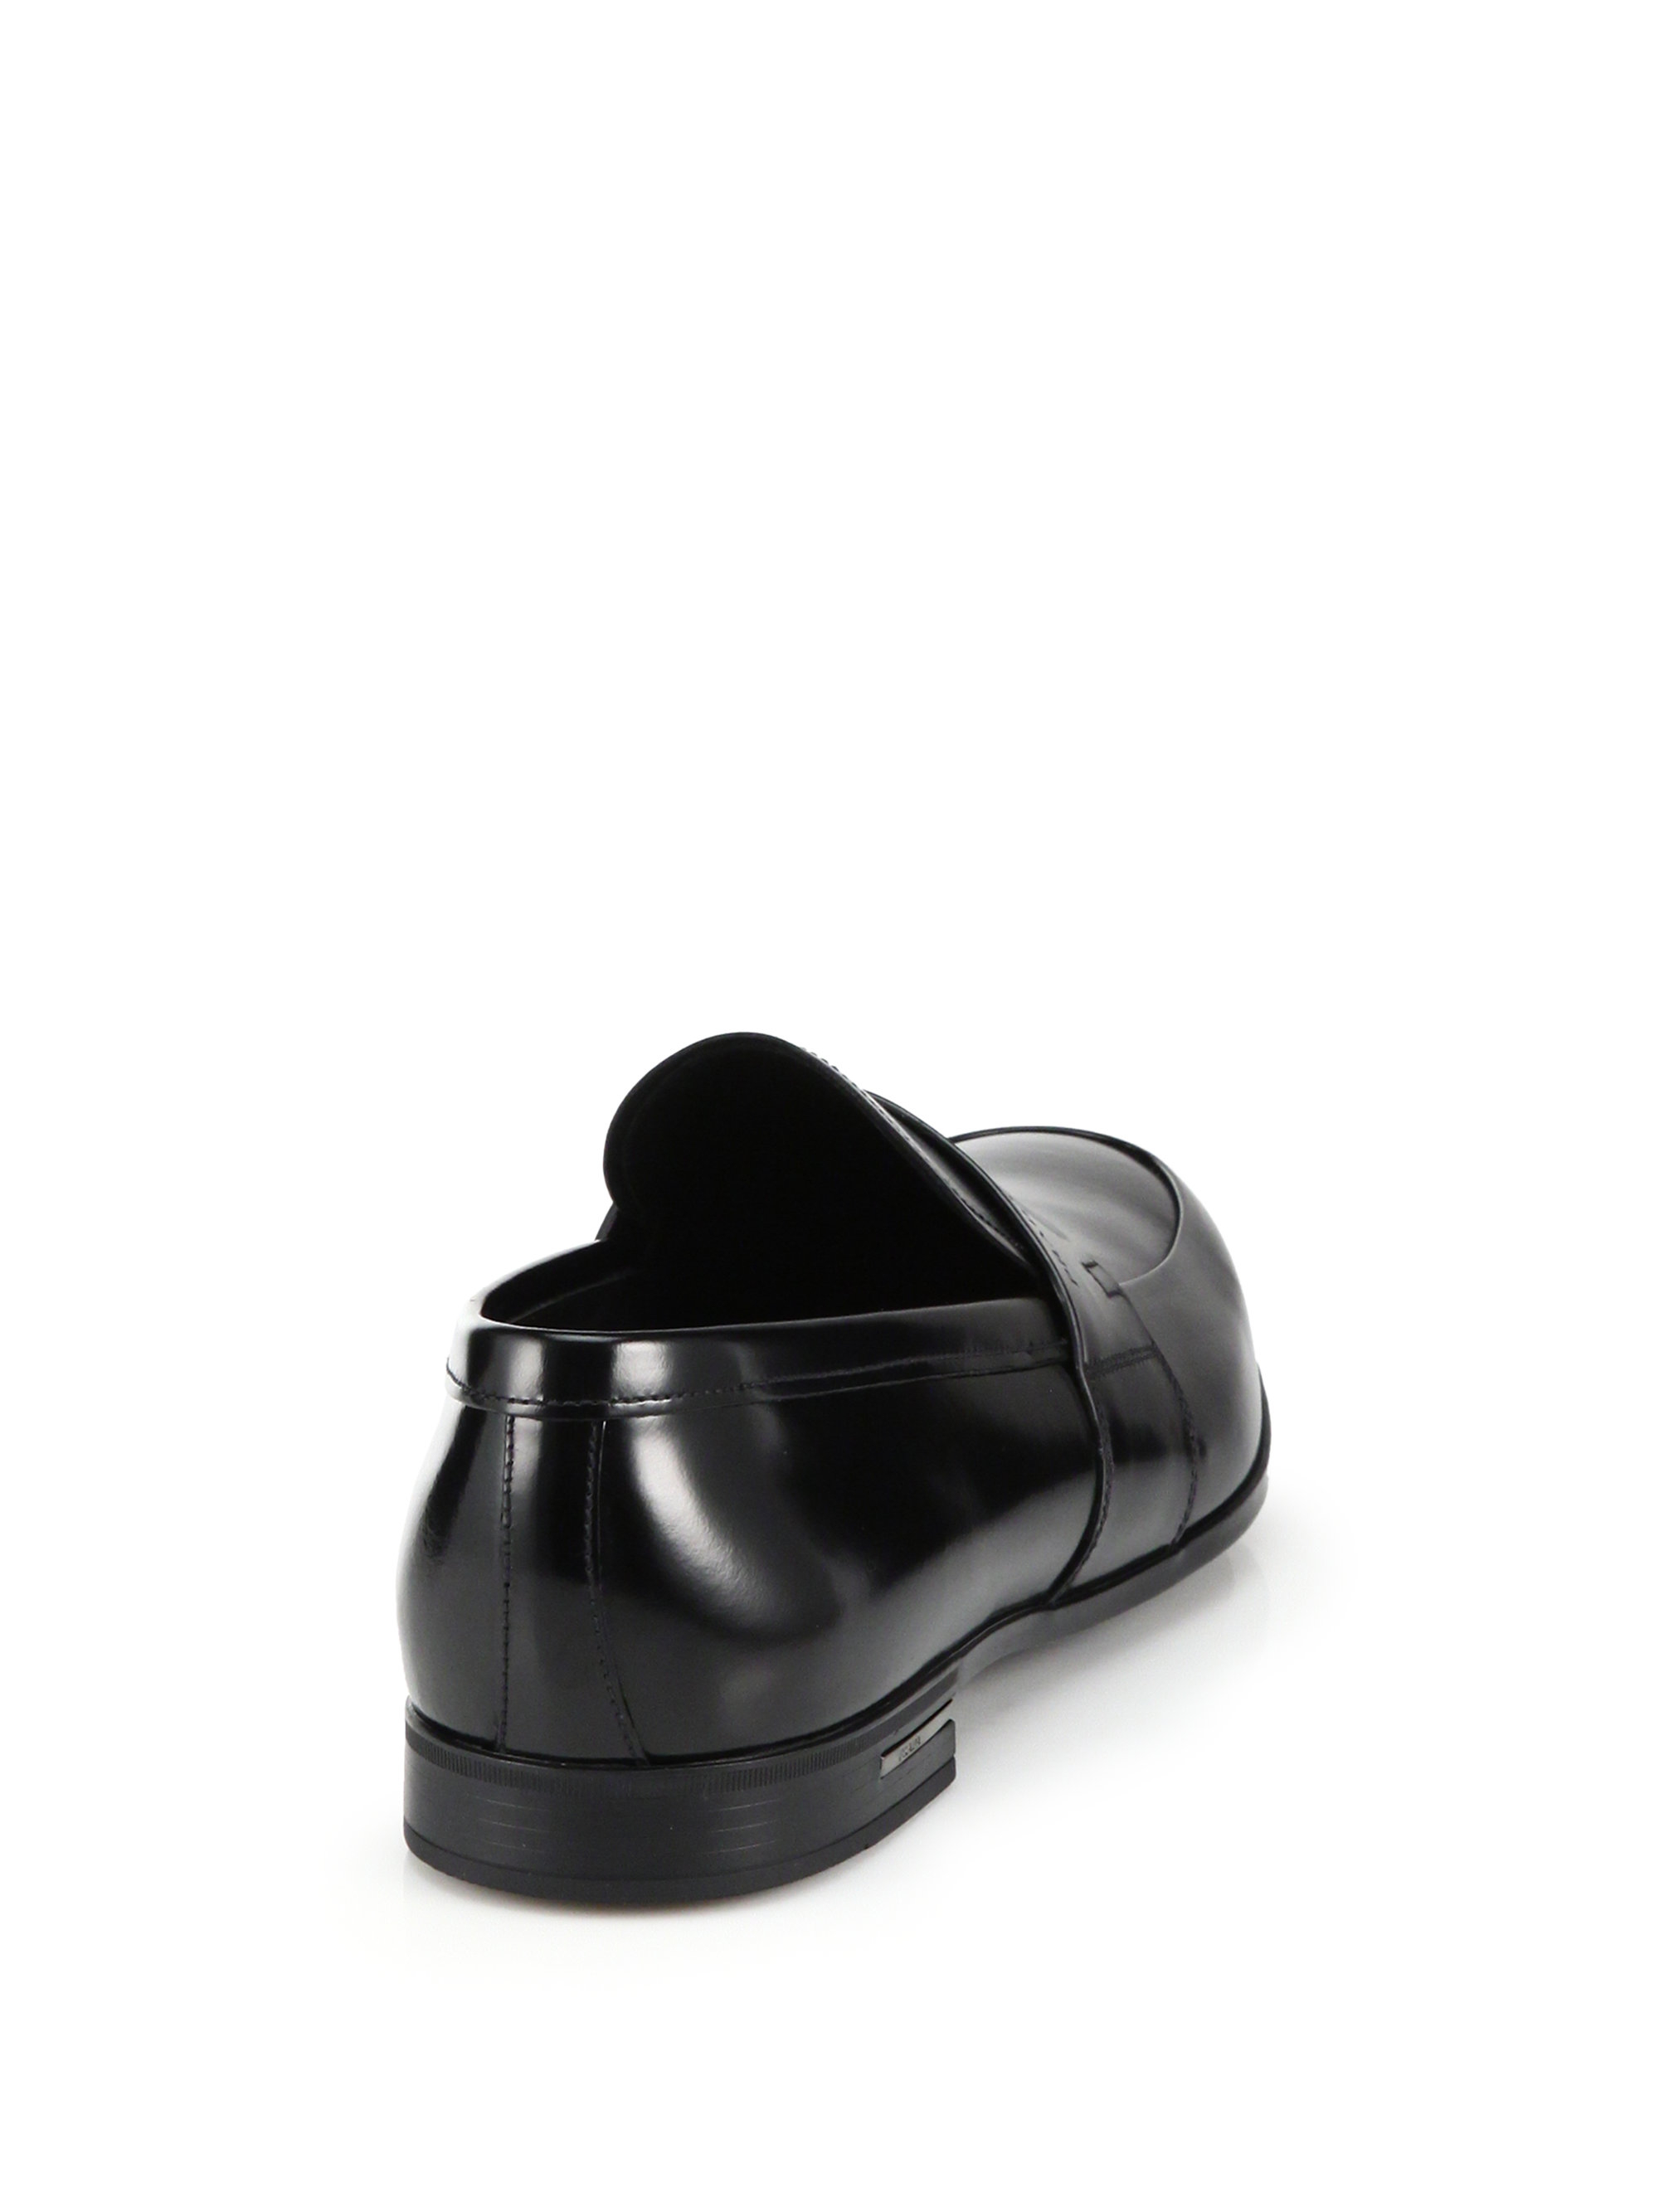 8aee888c7ee Lyst - Prada Spazzolato Leather Penny Loafers in Black for Men